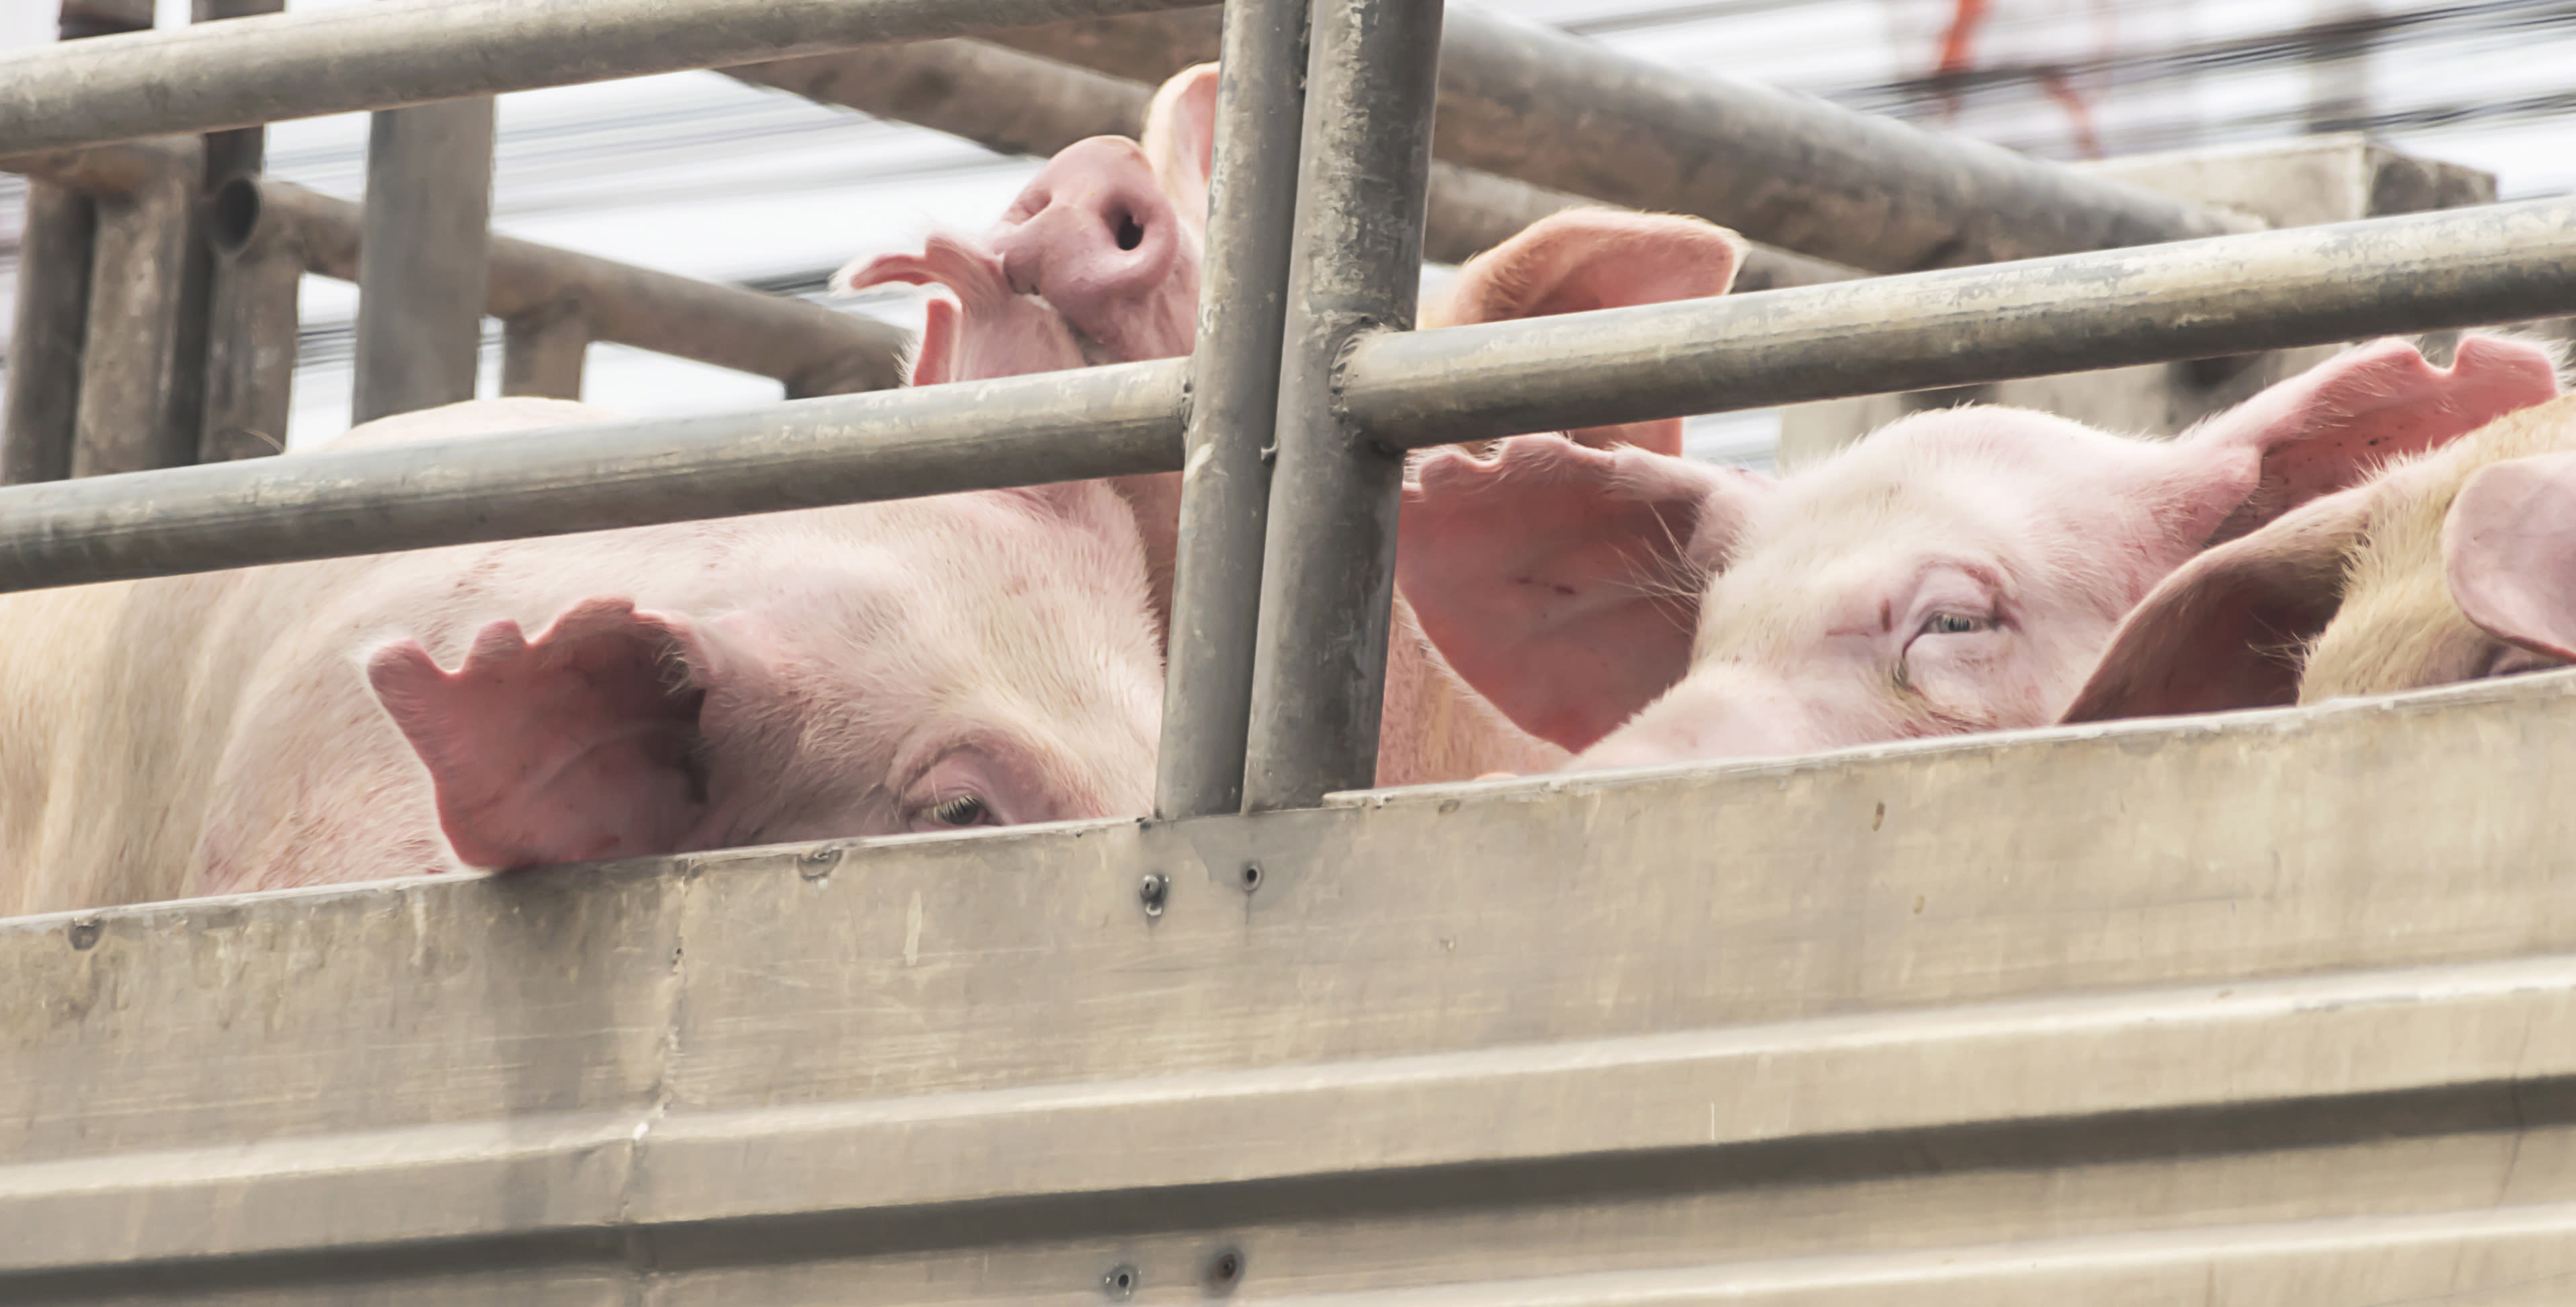 'Horror movie': investigation underway after damning piggery footage leaked